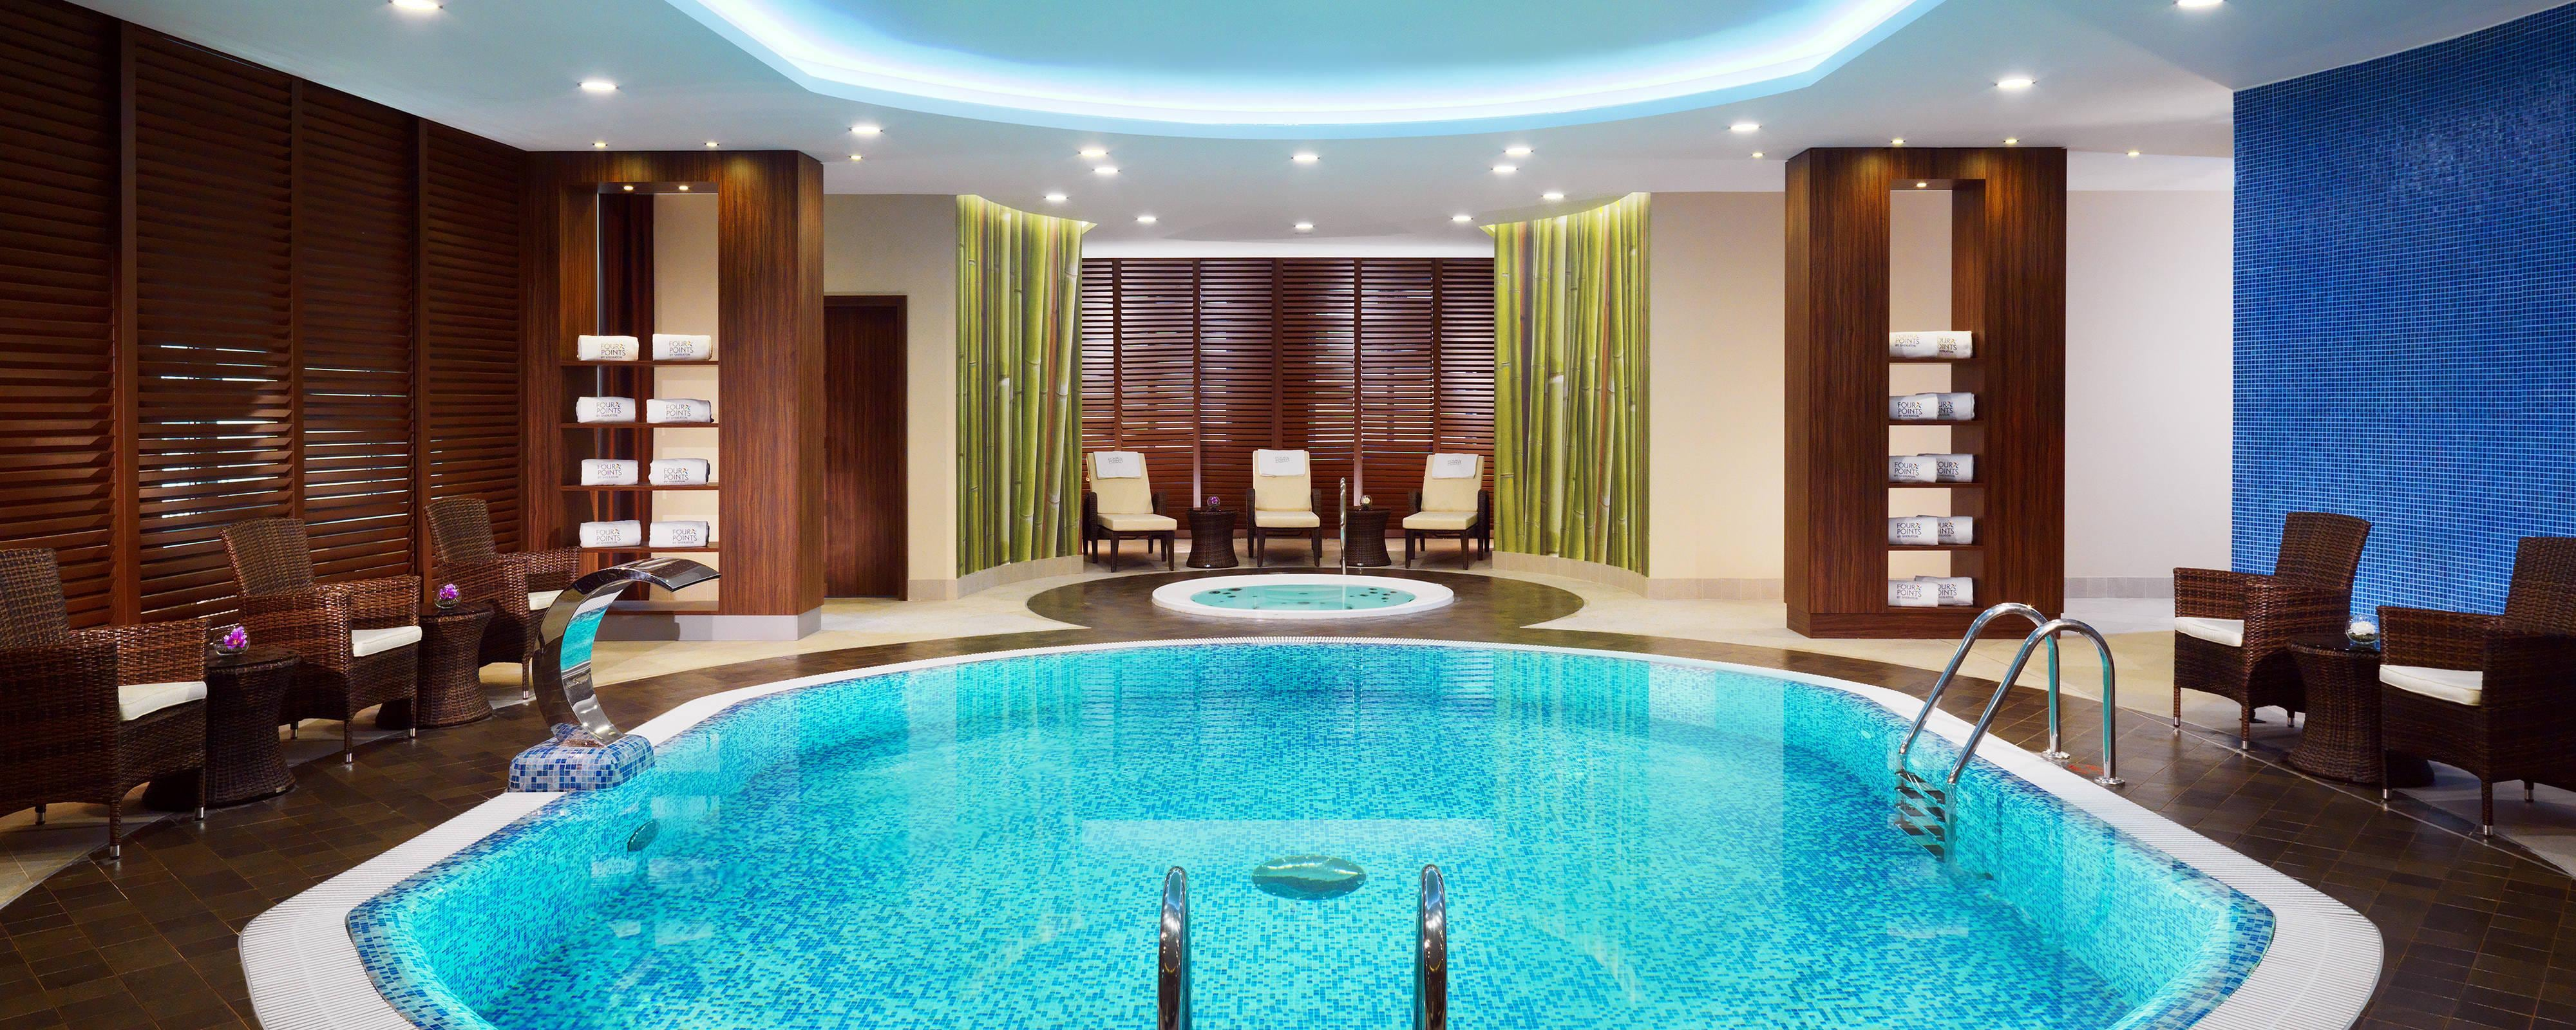 Agua Spa Indoor Pool